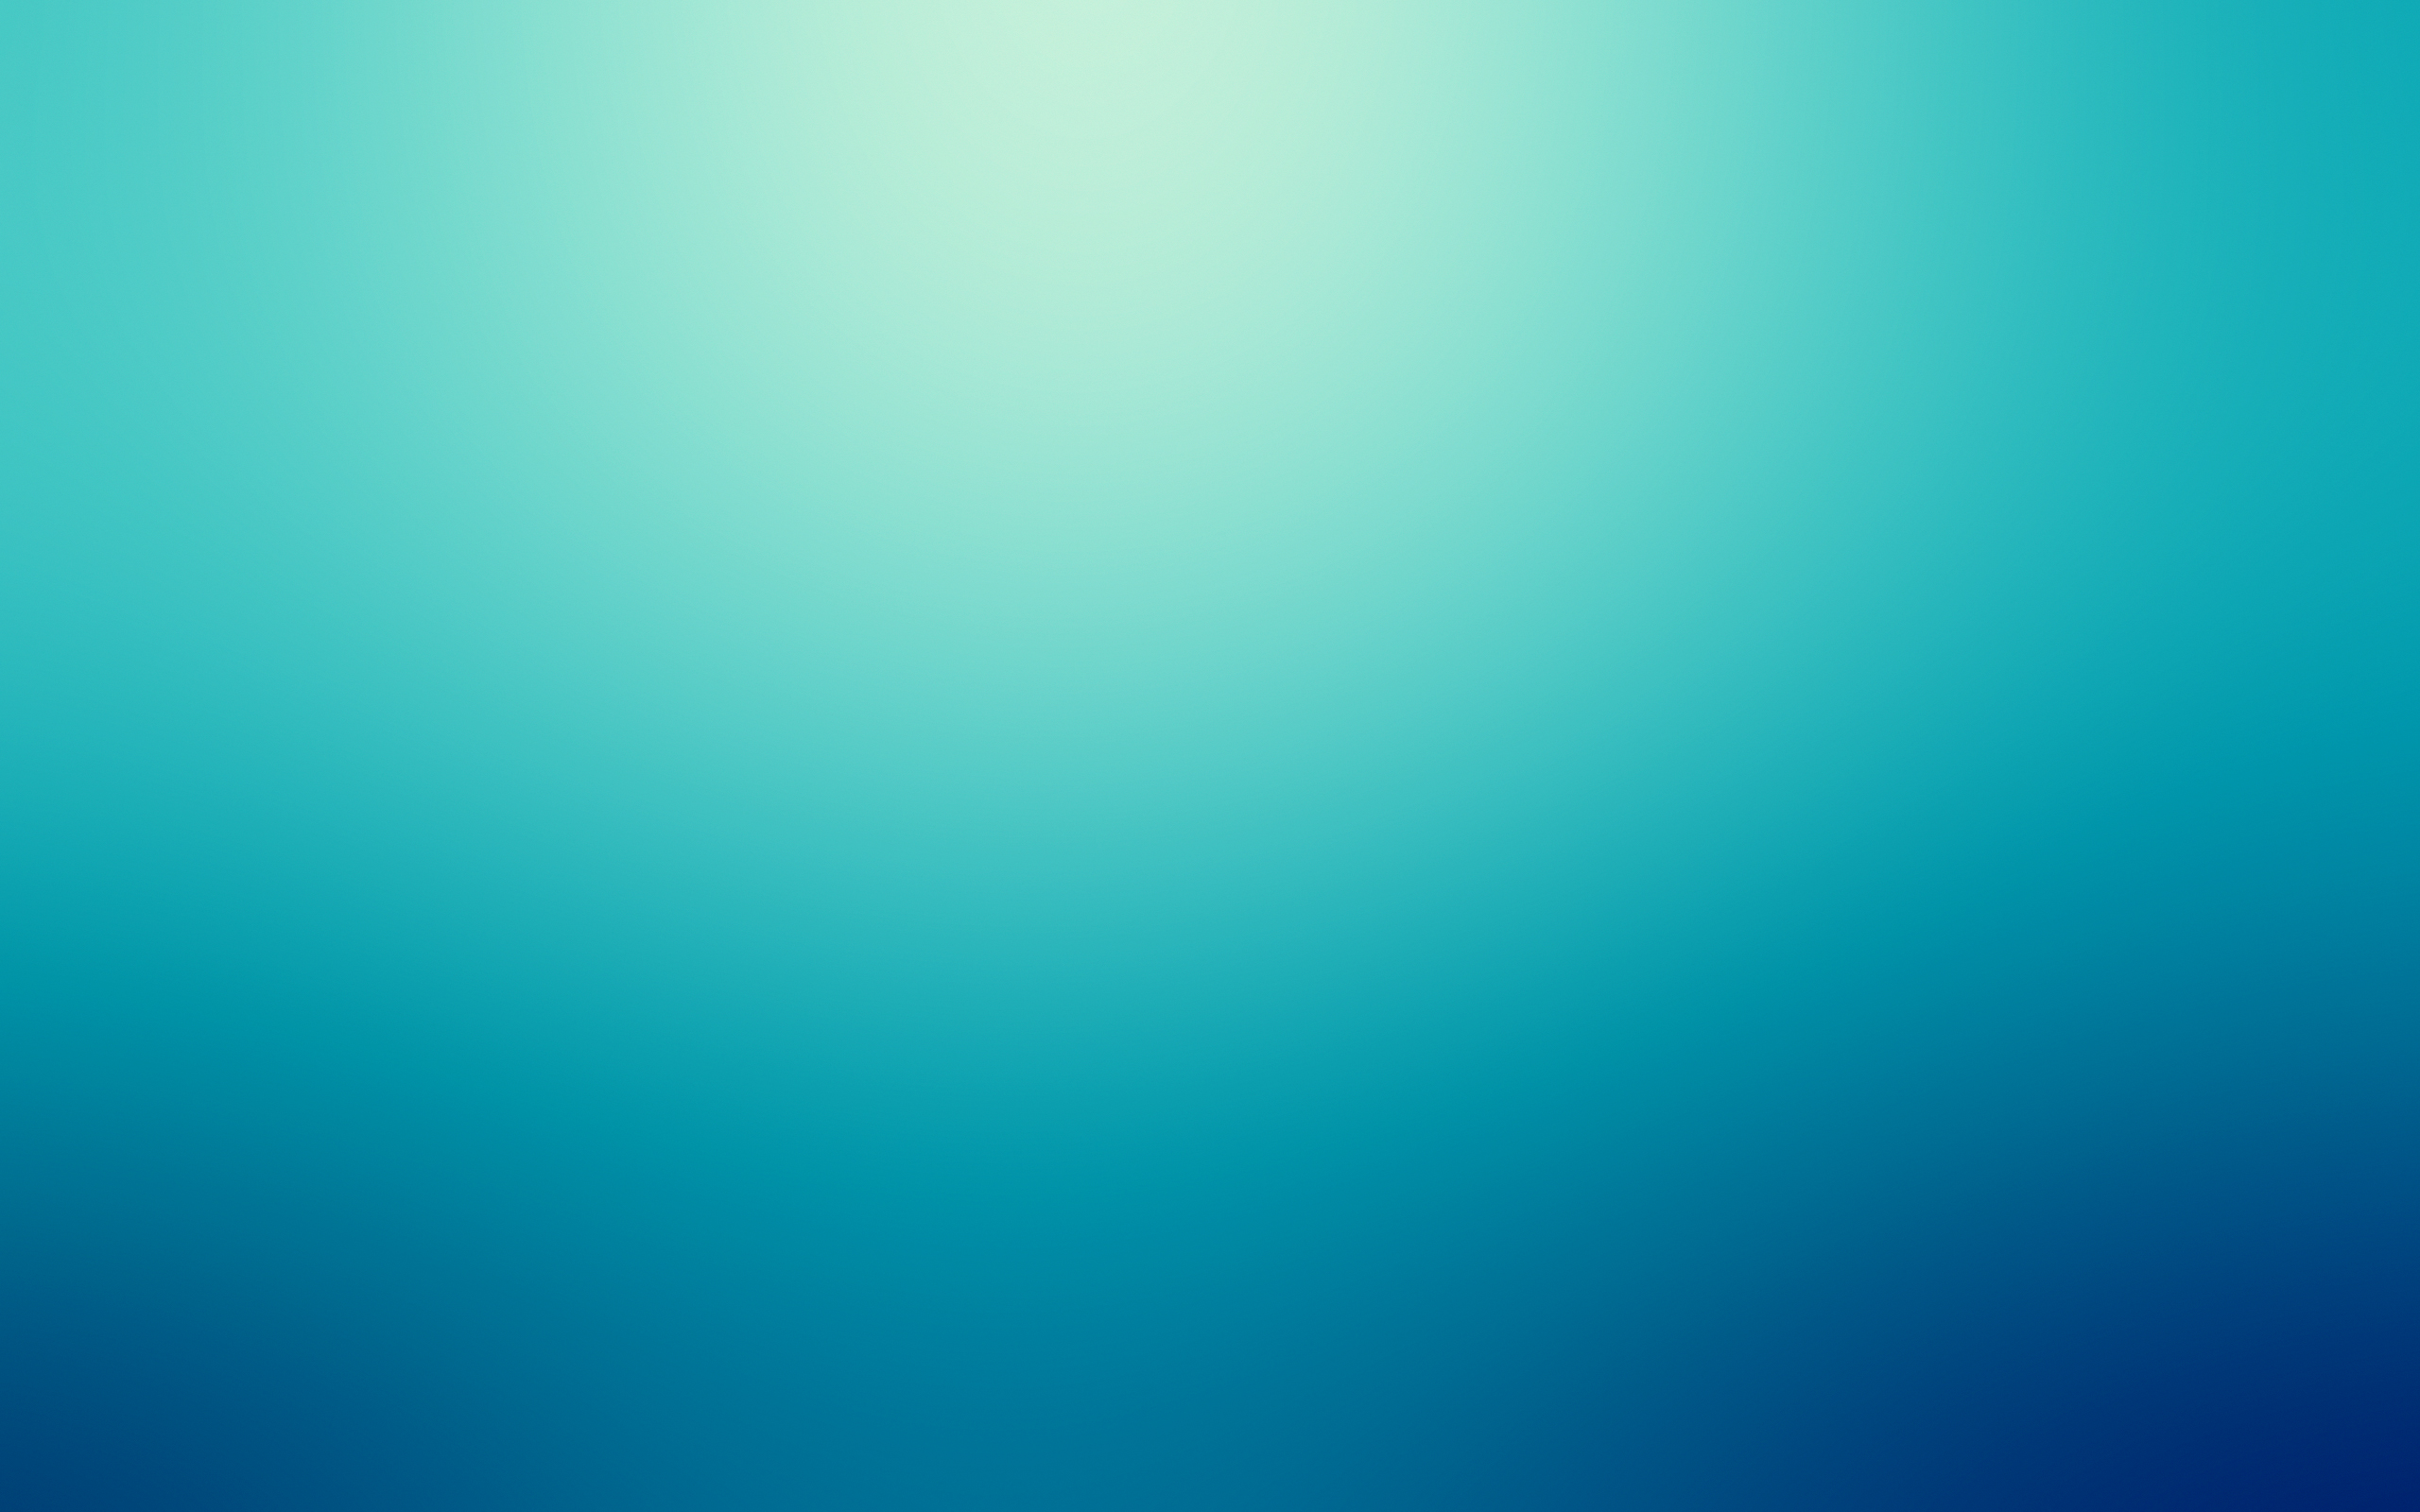 32 Turquoise HD Wallpapers | Backgrounds - Wallpaper Abyss